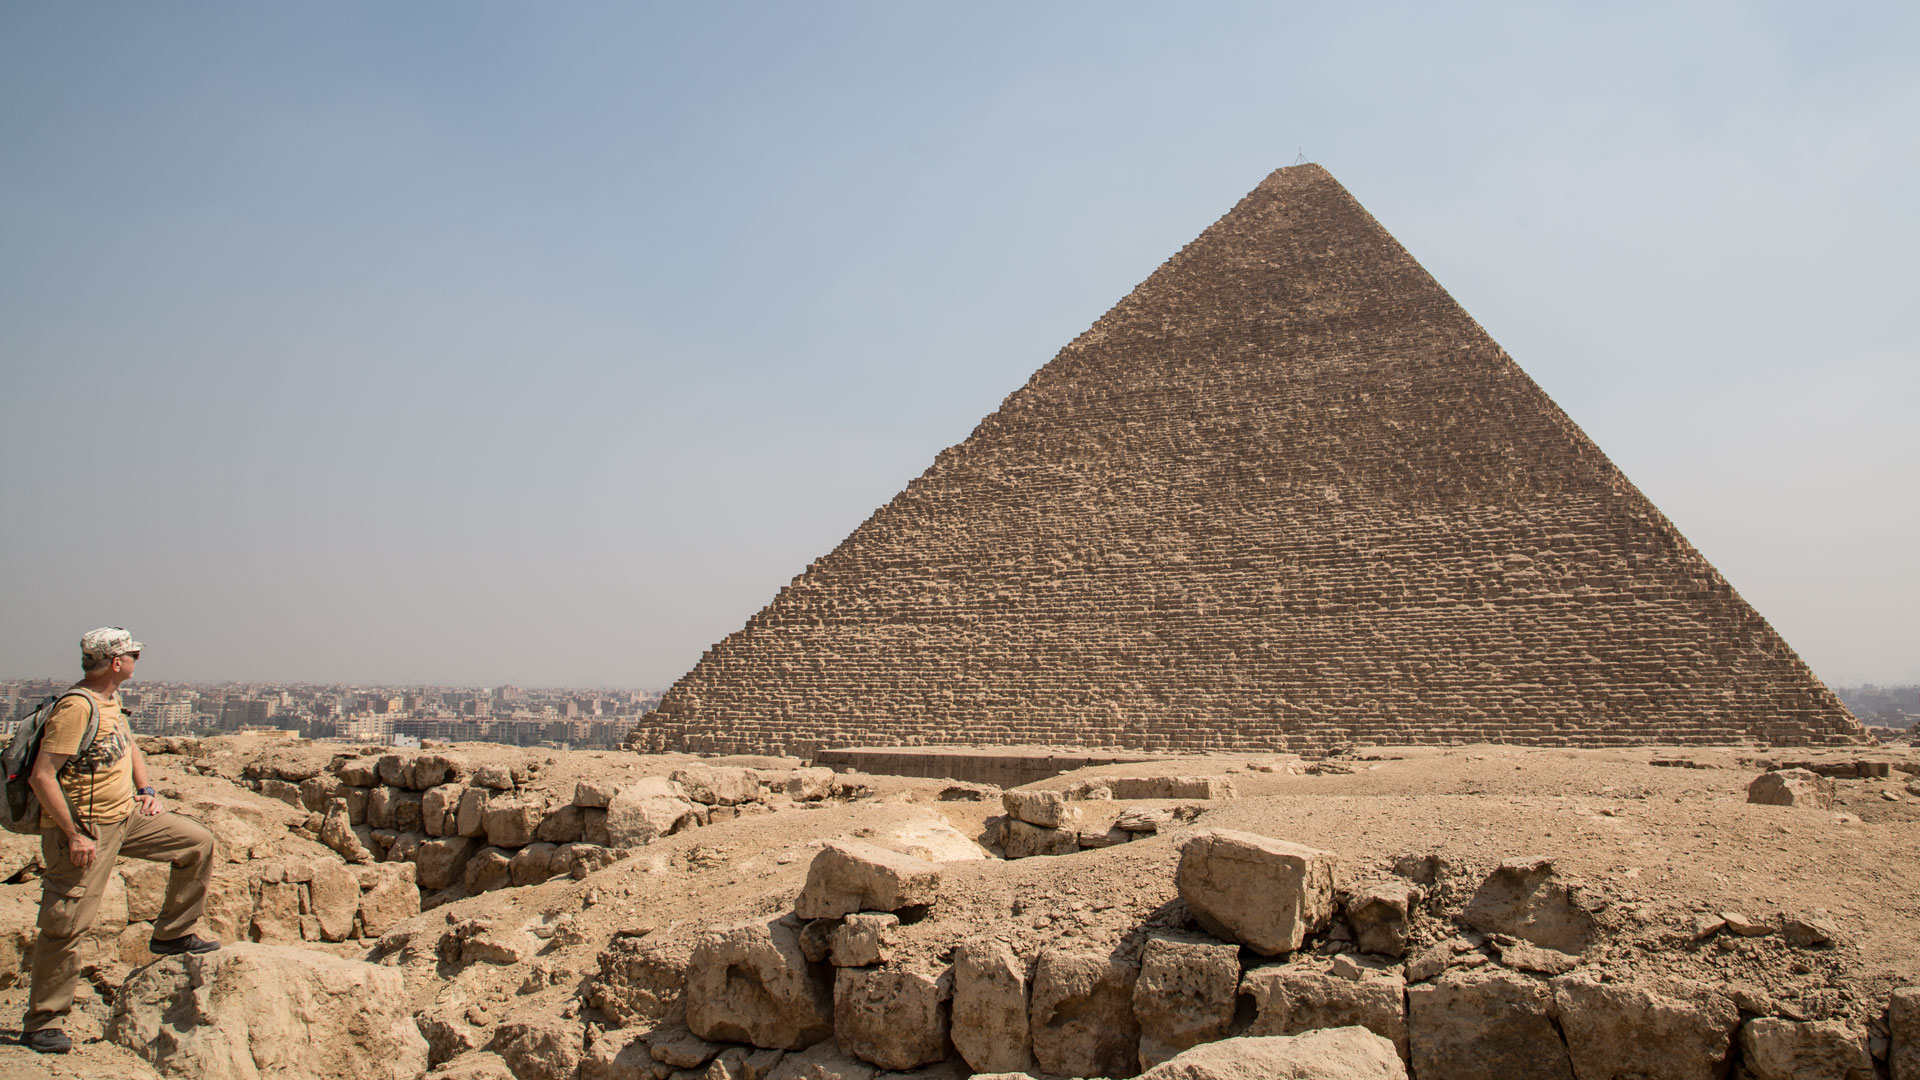 Does the Great Pyramid come from pre-sin-flood time?